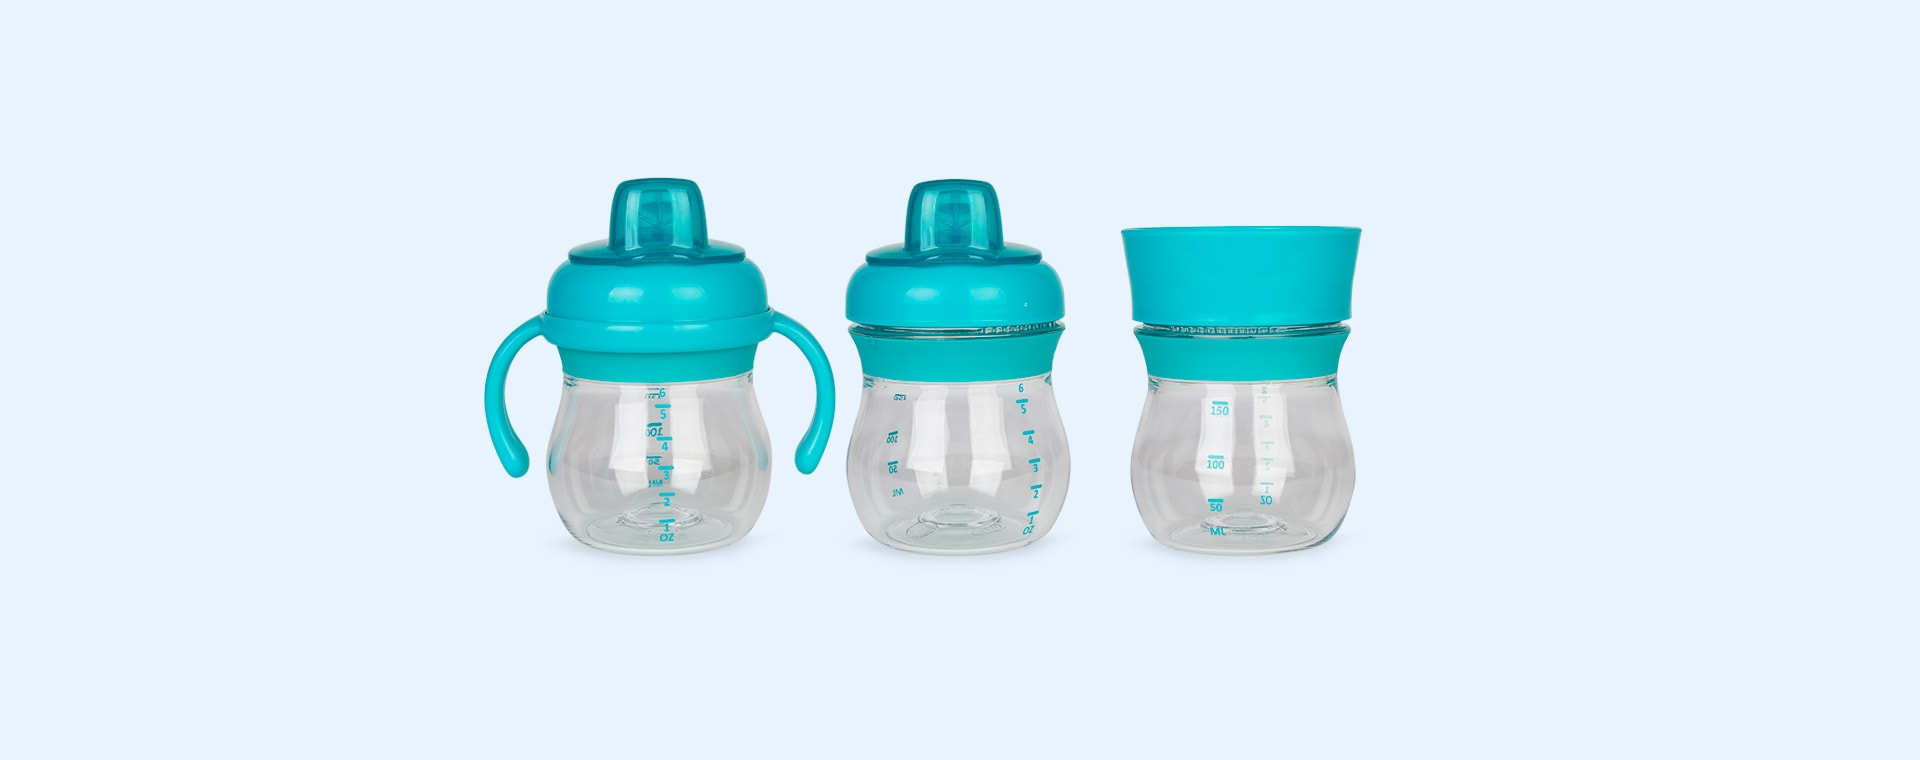 Teal Oxo Tot Transitions Soft Spout Sippy Cup Set